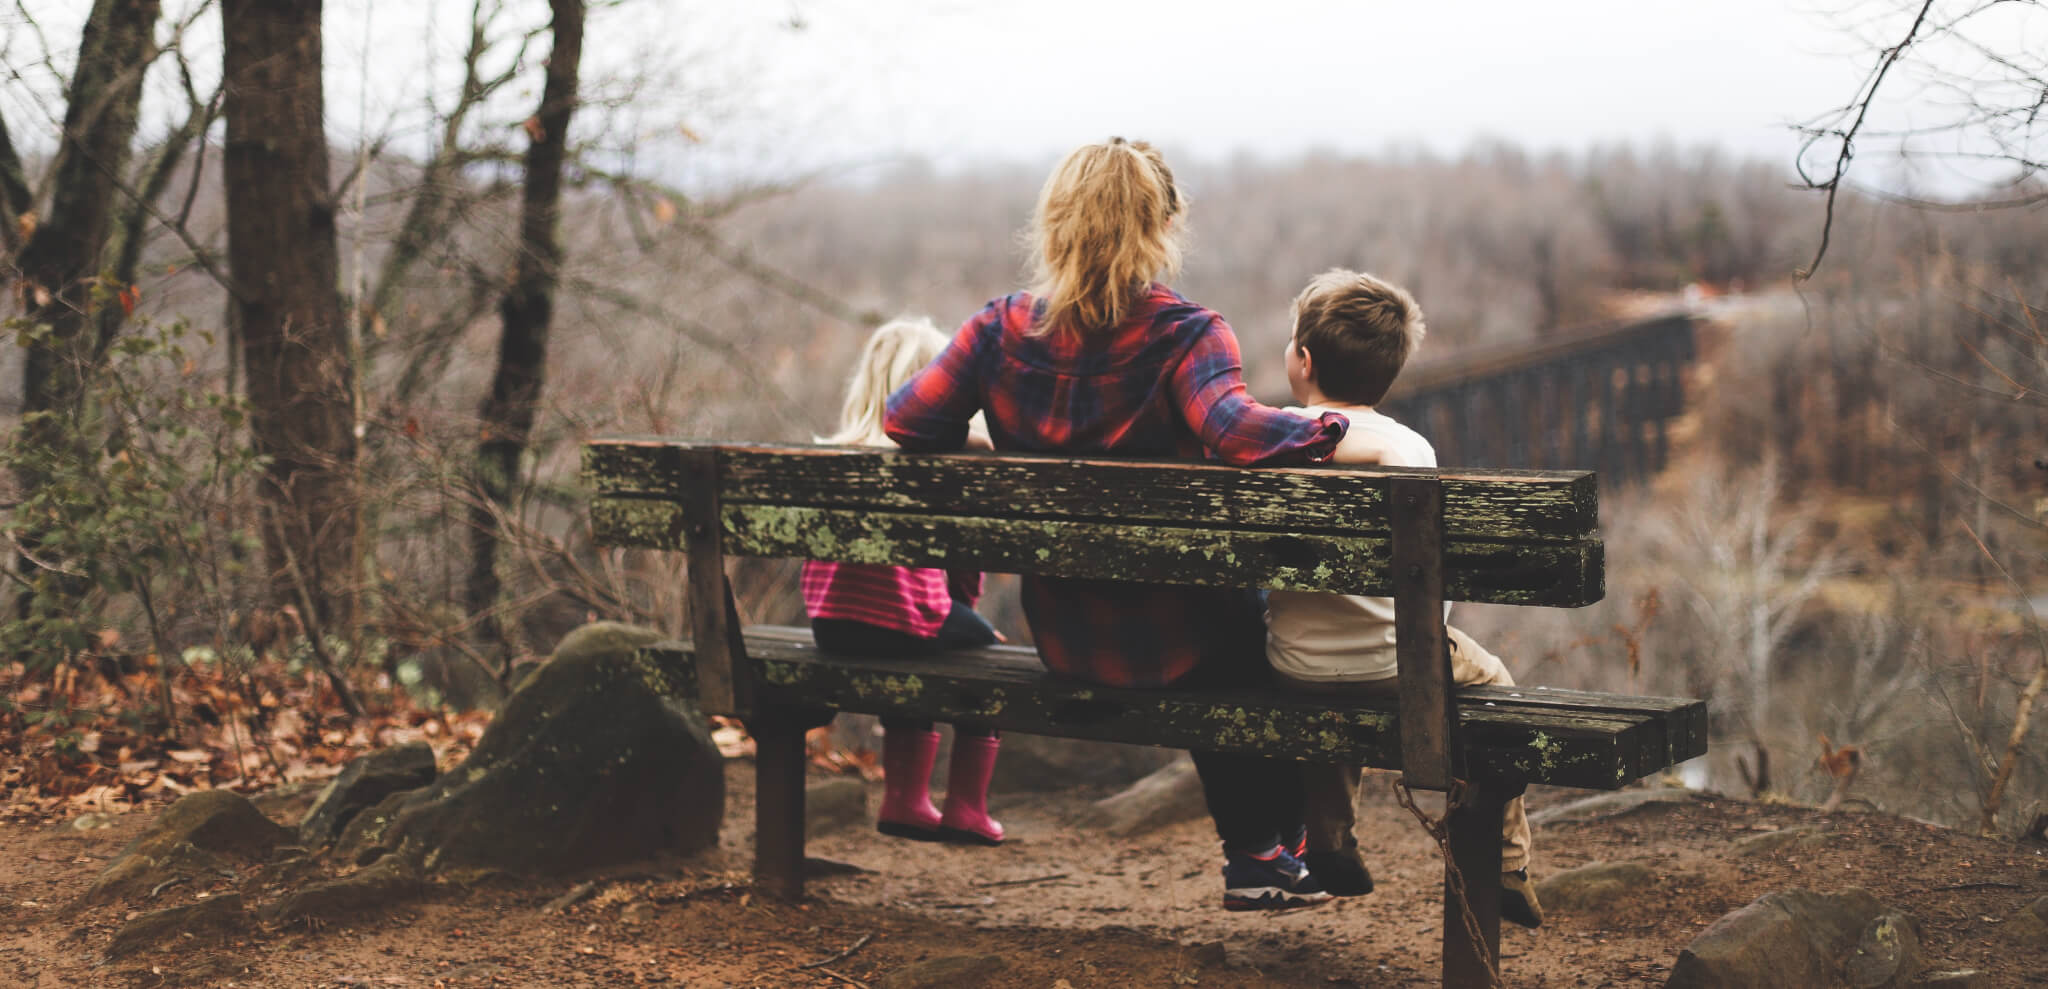 Confessions of a Solo Parent What Widows Wish People Knew